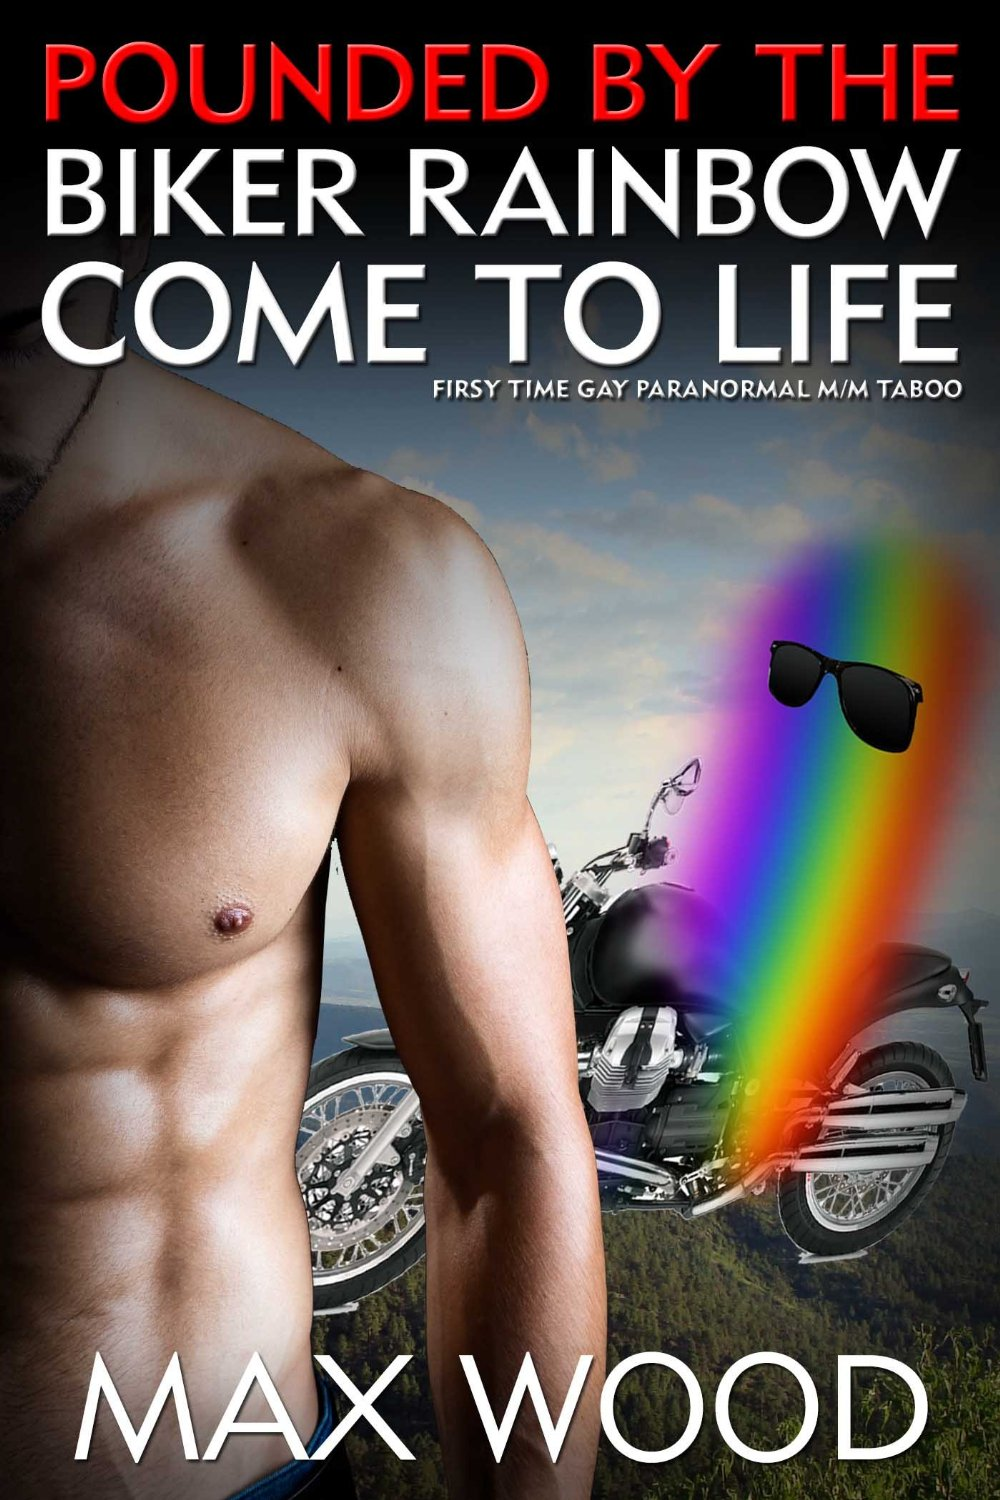 Pounded by the biker rainbow come to life